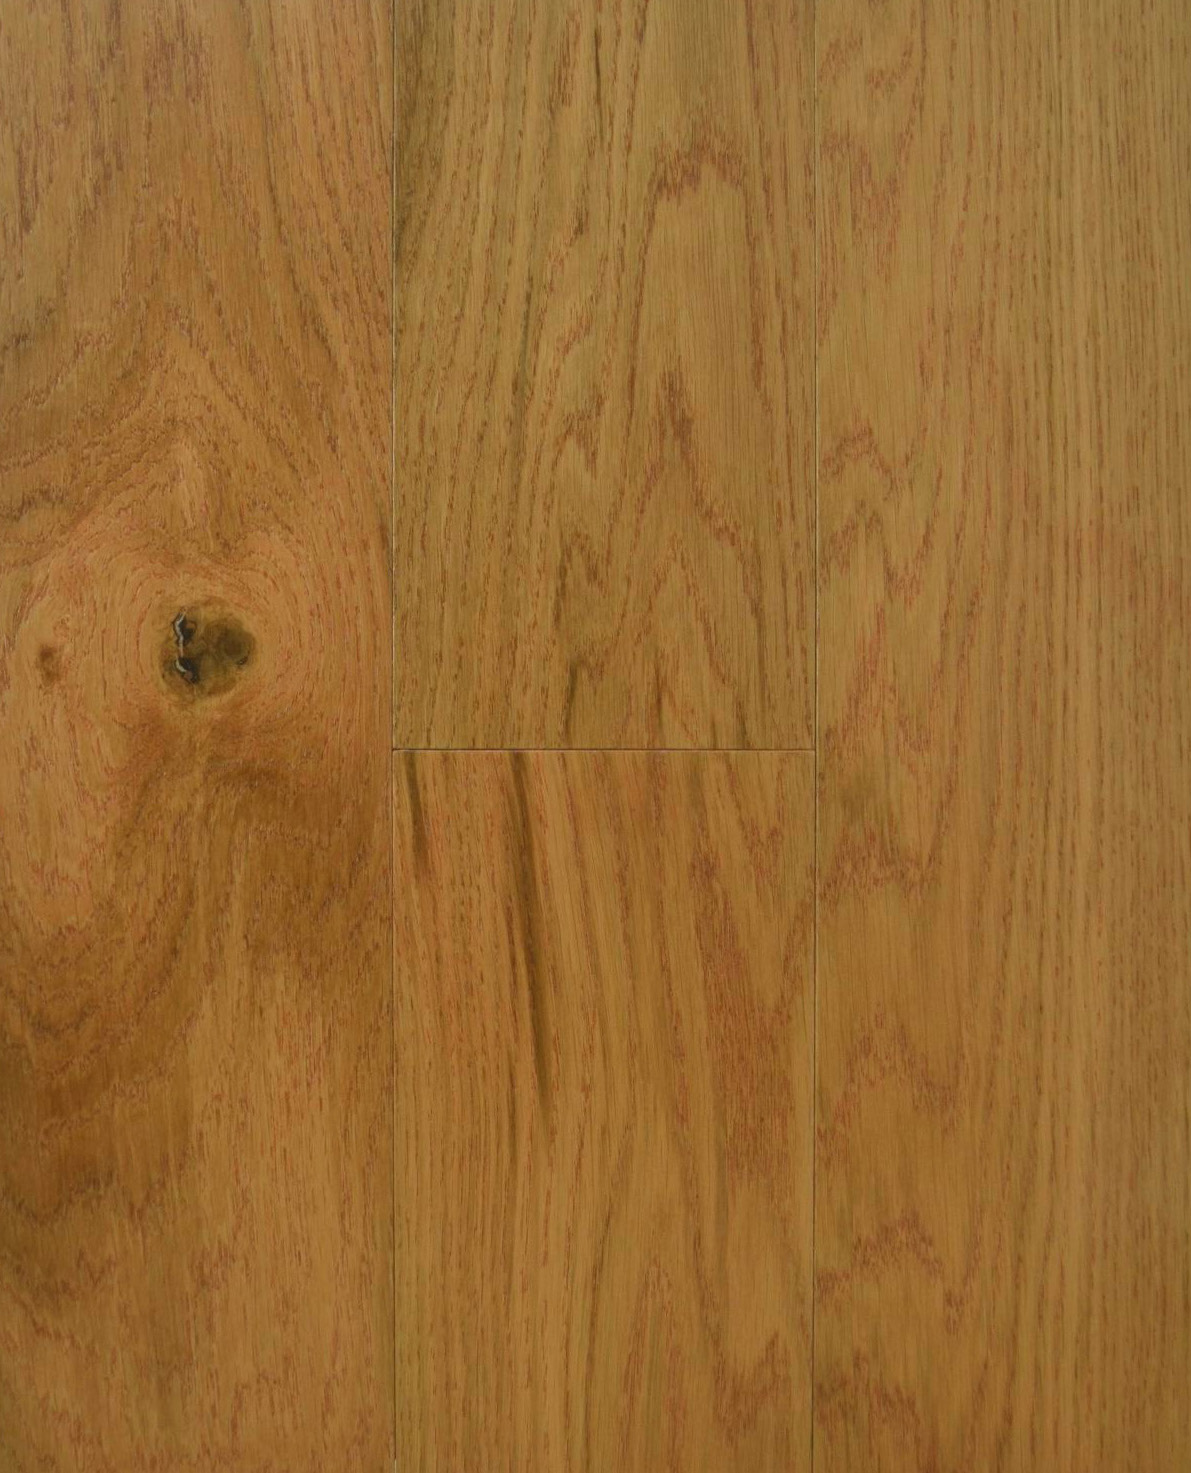 Lm flooring town square butterscotch hardwood flooring for Square hardwood flooring